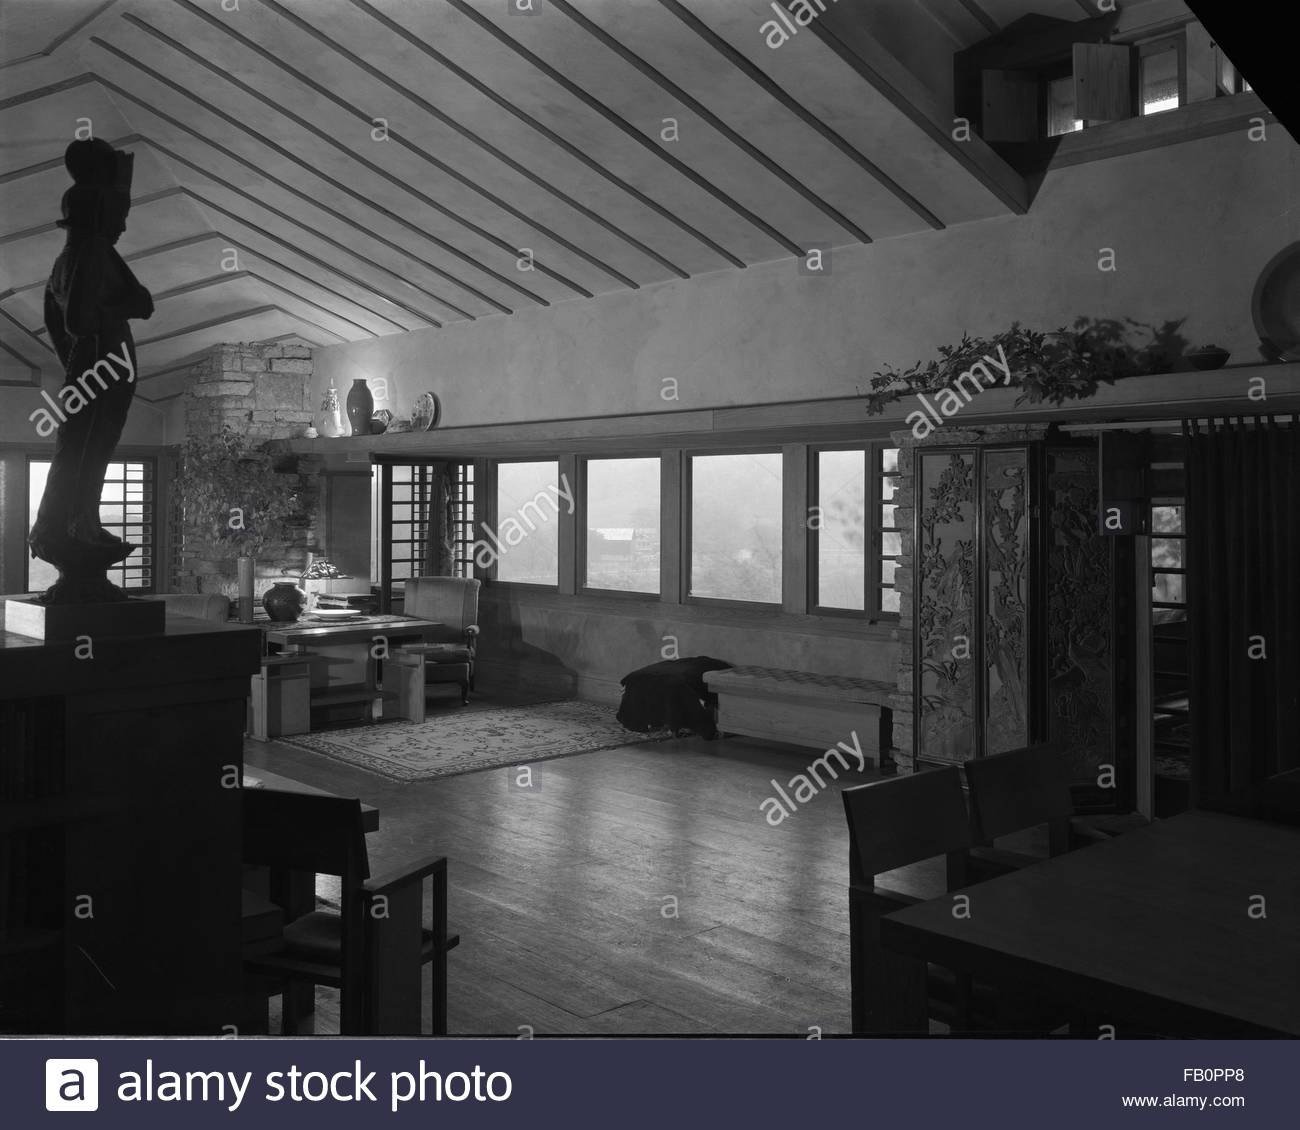 Taliesin East in Spring Green (Wis.), 1937 Dec. living room. - Stock Image